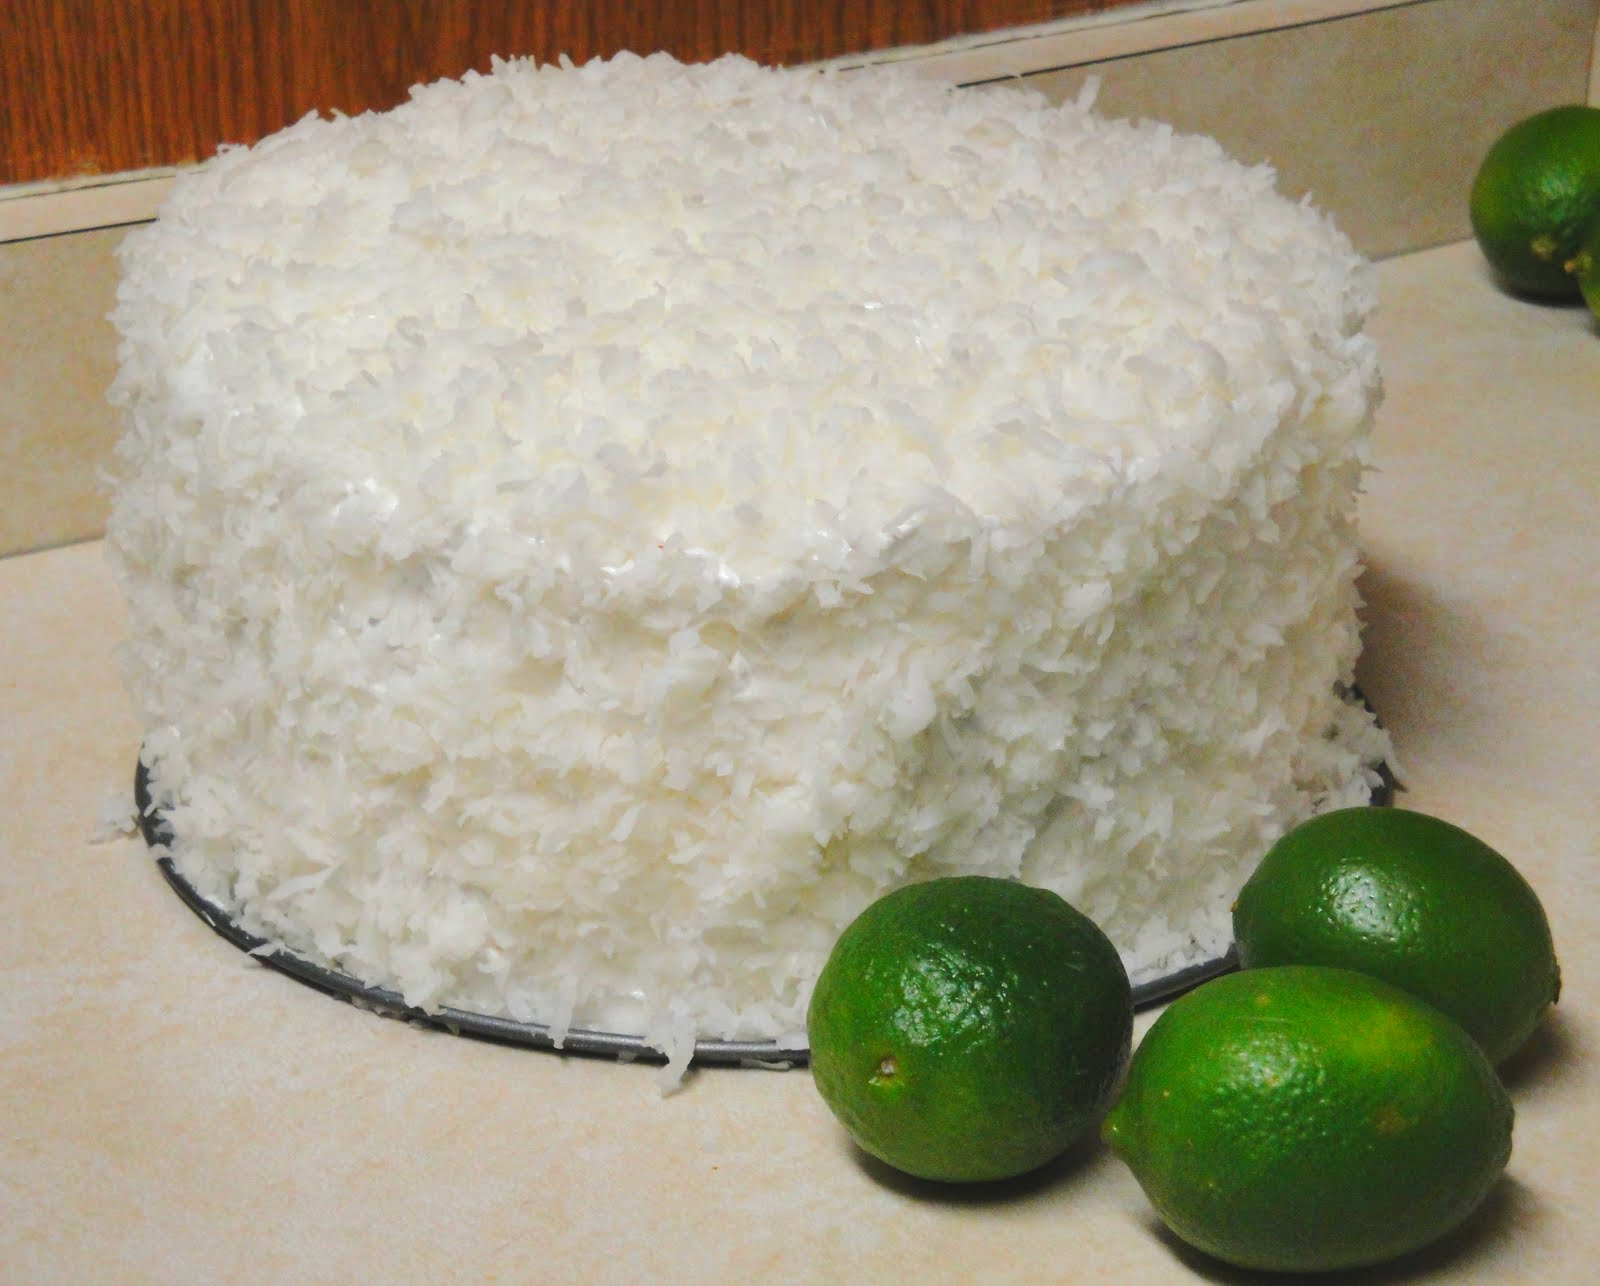 ... Mac & Cheese, and Ginger-Lime Coconut Cake with Marshmallow Frosting